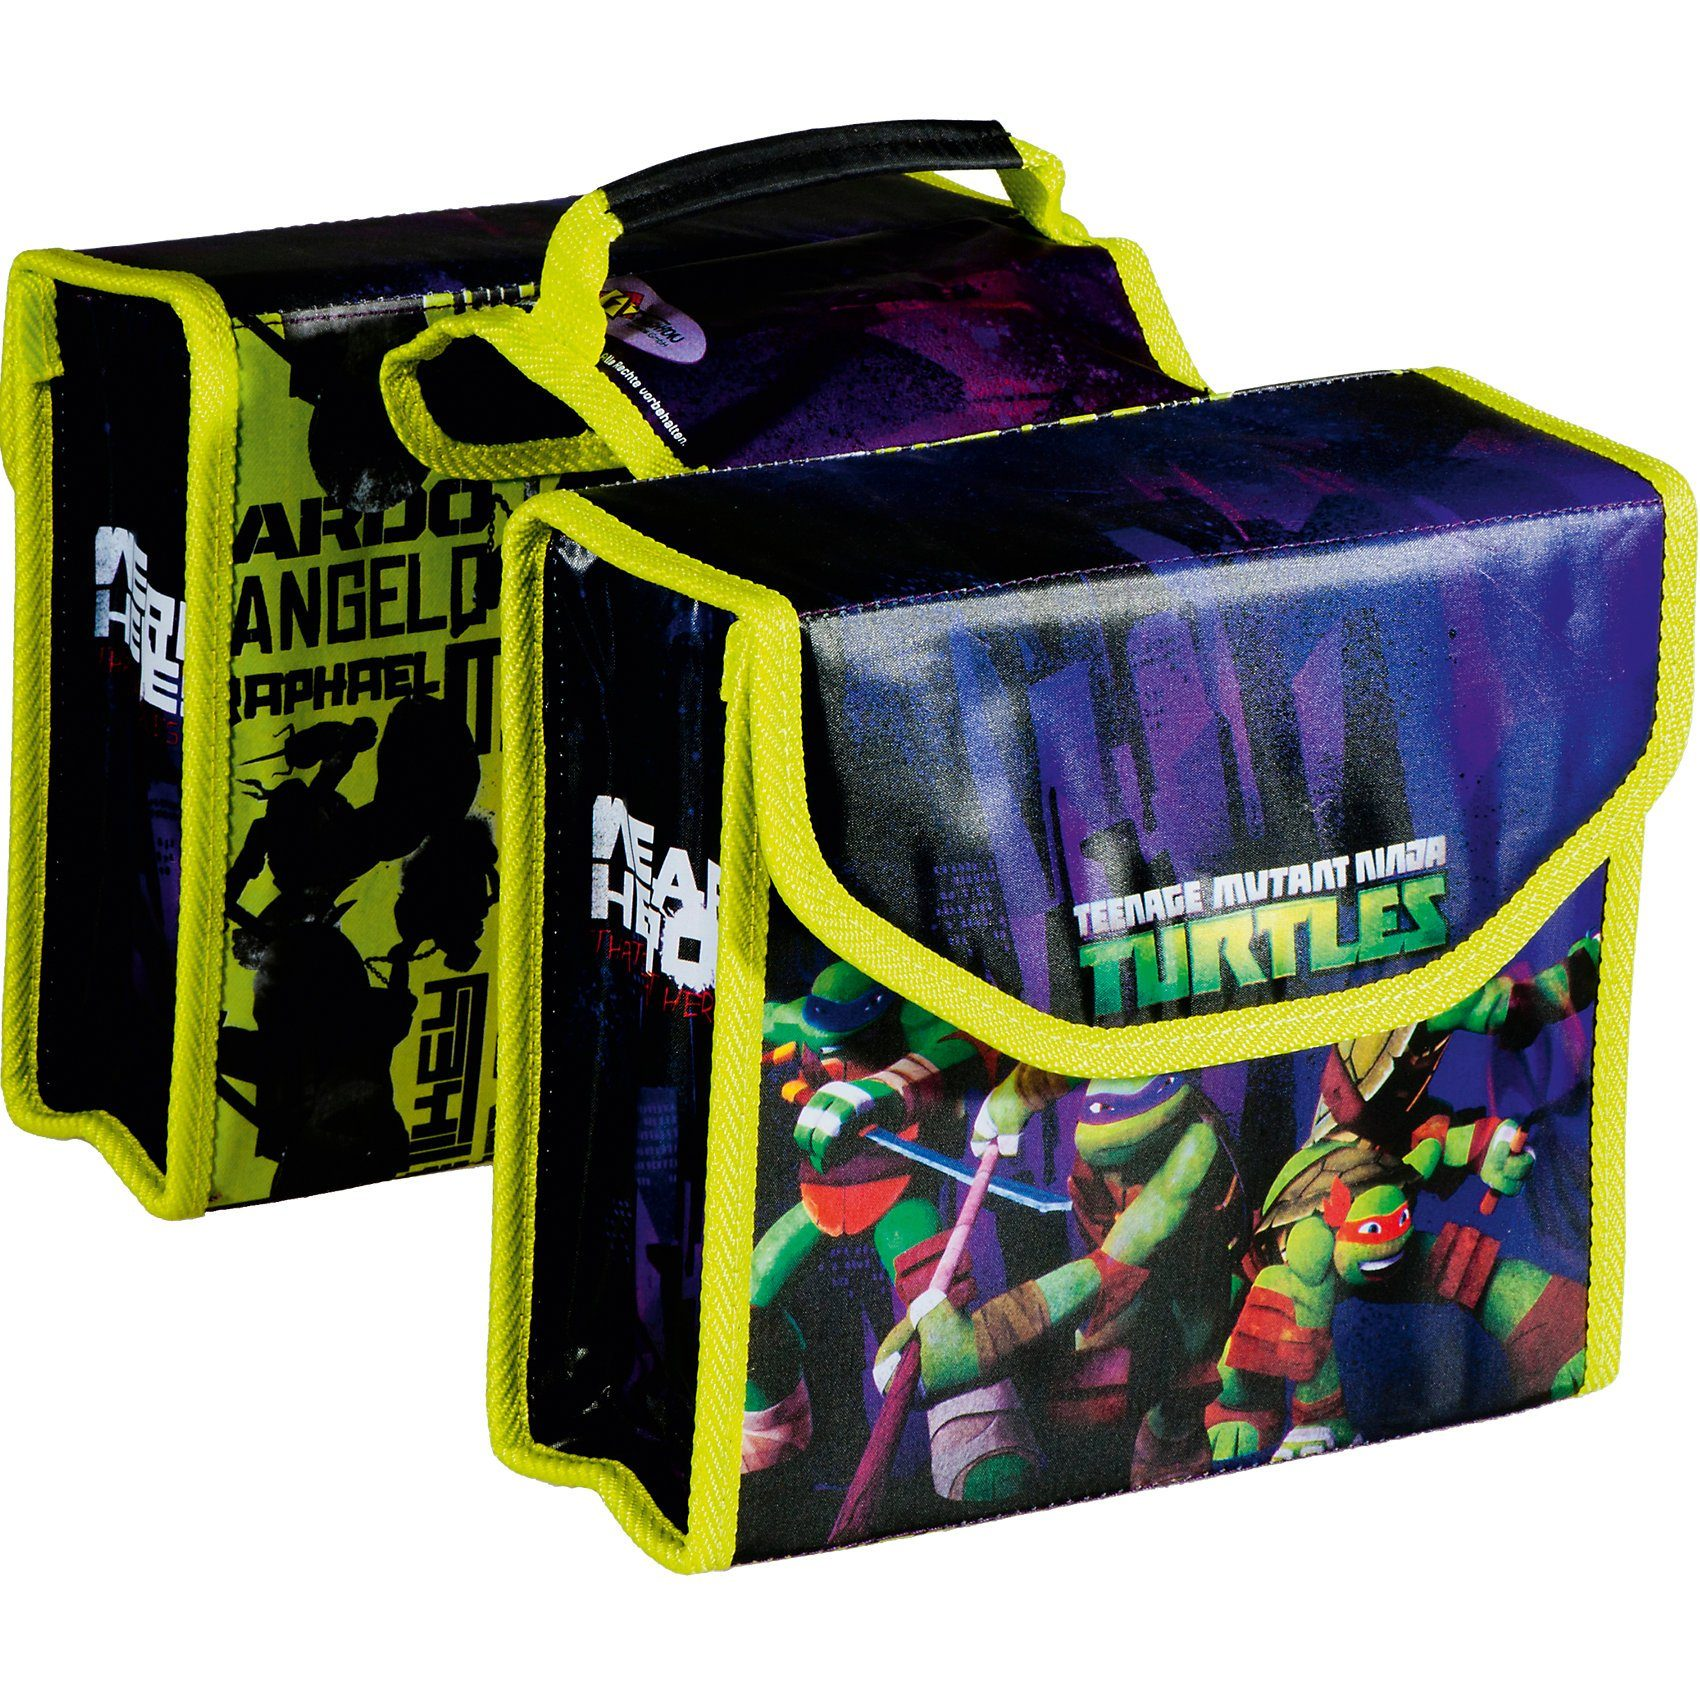 Bike Fashion Teenage Mutant Ninja Turtles Doppelpacktasche